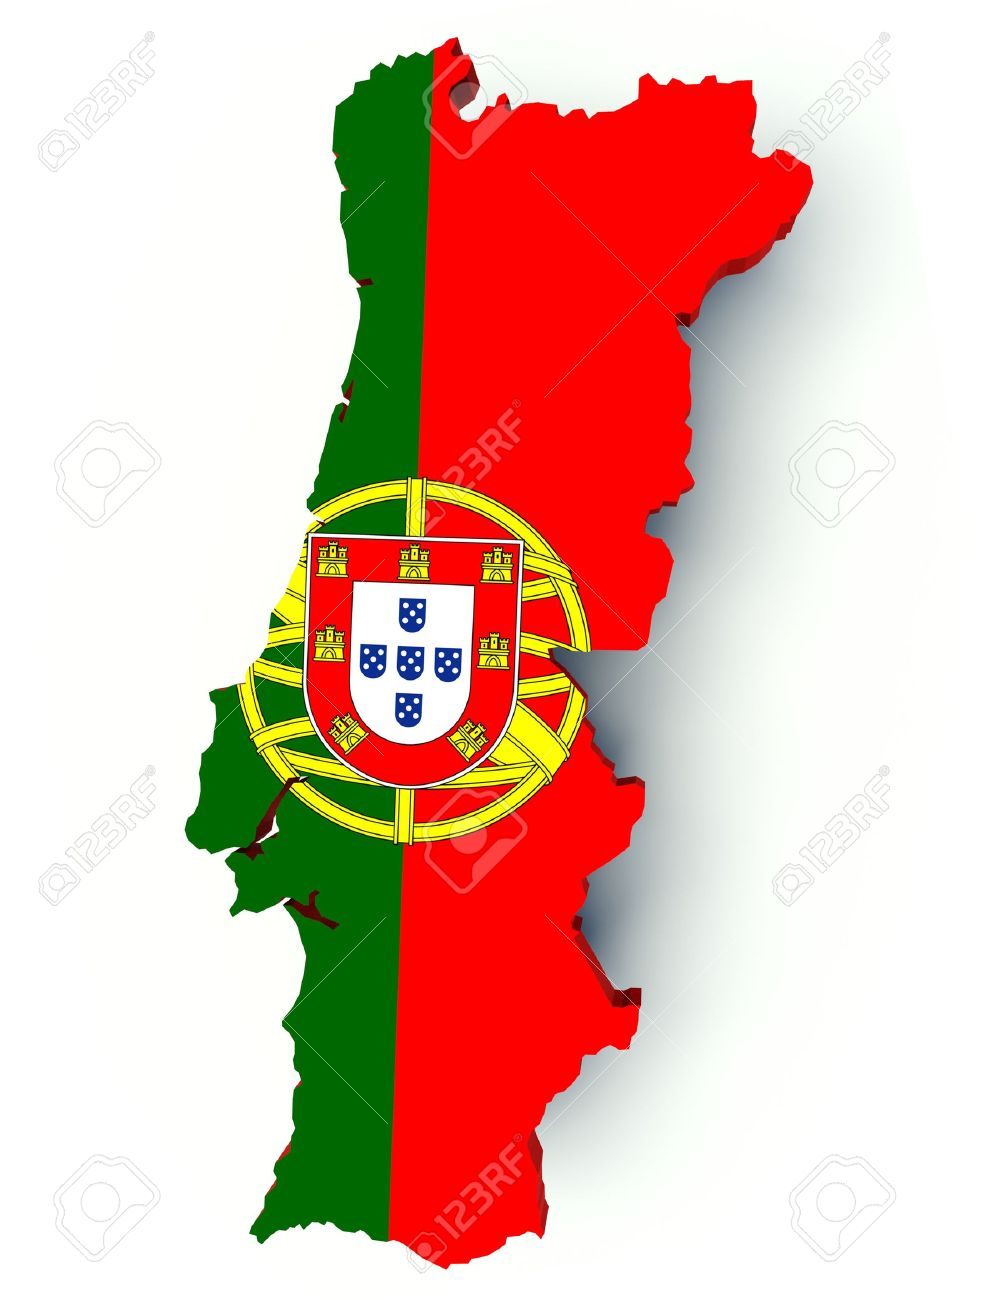 Map Of Portugal With Flag Colors 3d Render Illustration Stock